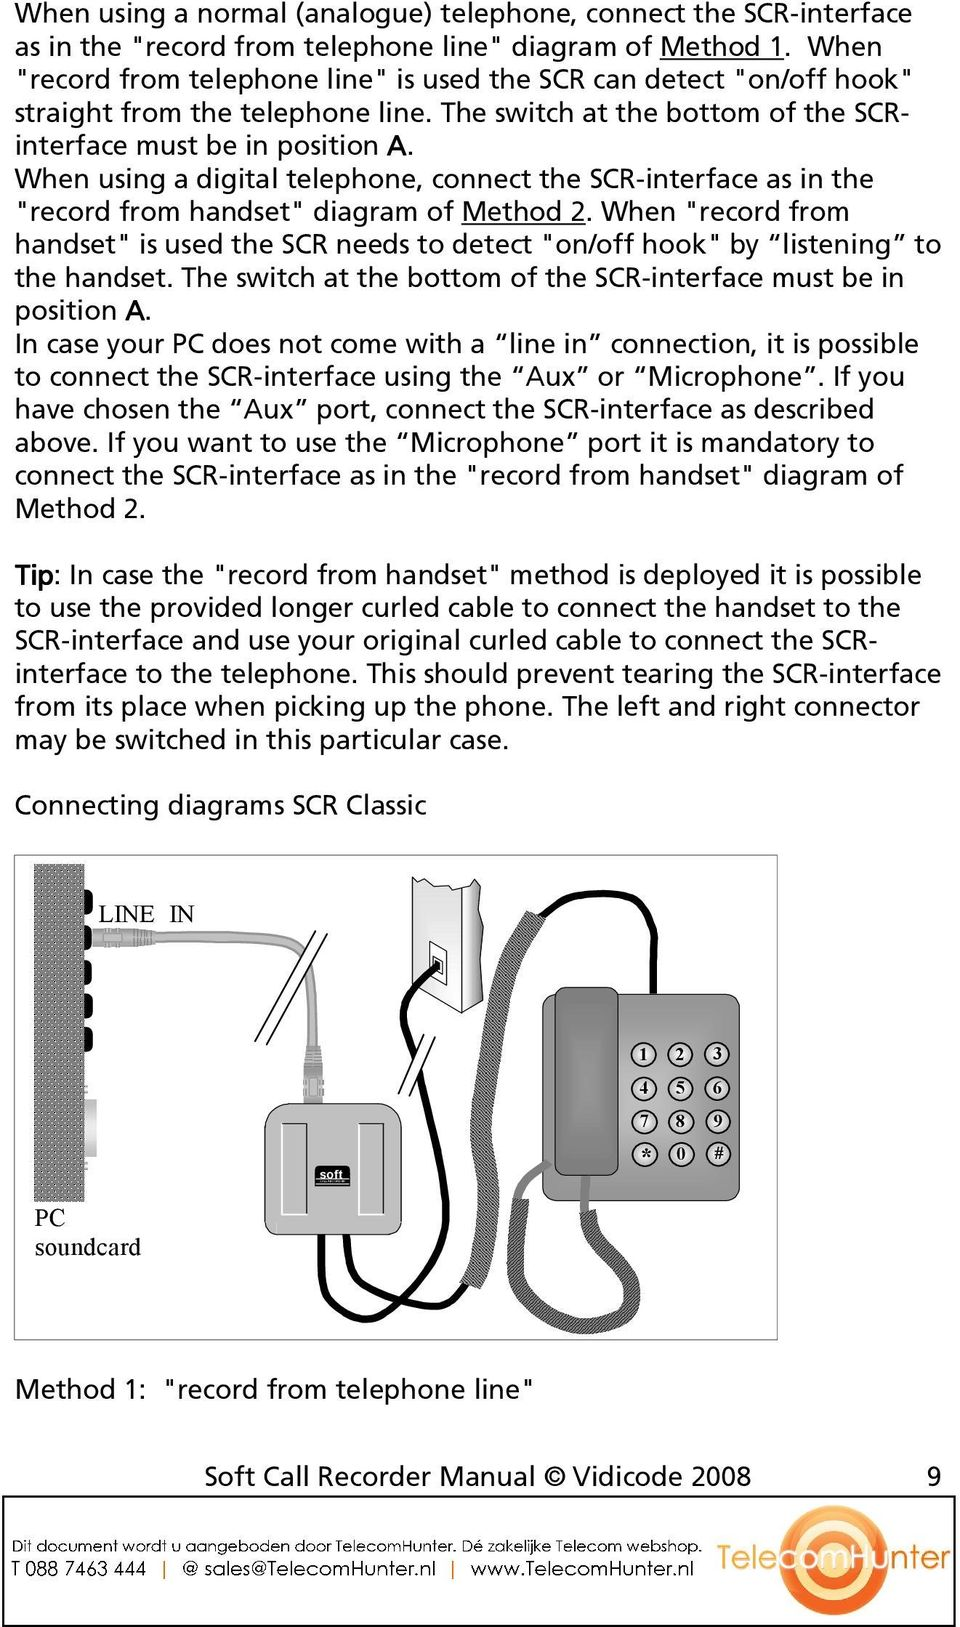 "When using a digital telephone, connect the SCR-interface as in the ""record from handset"" diagram of Method 2."